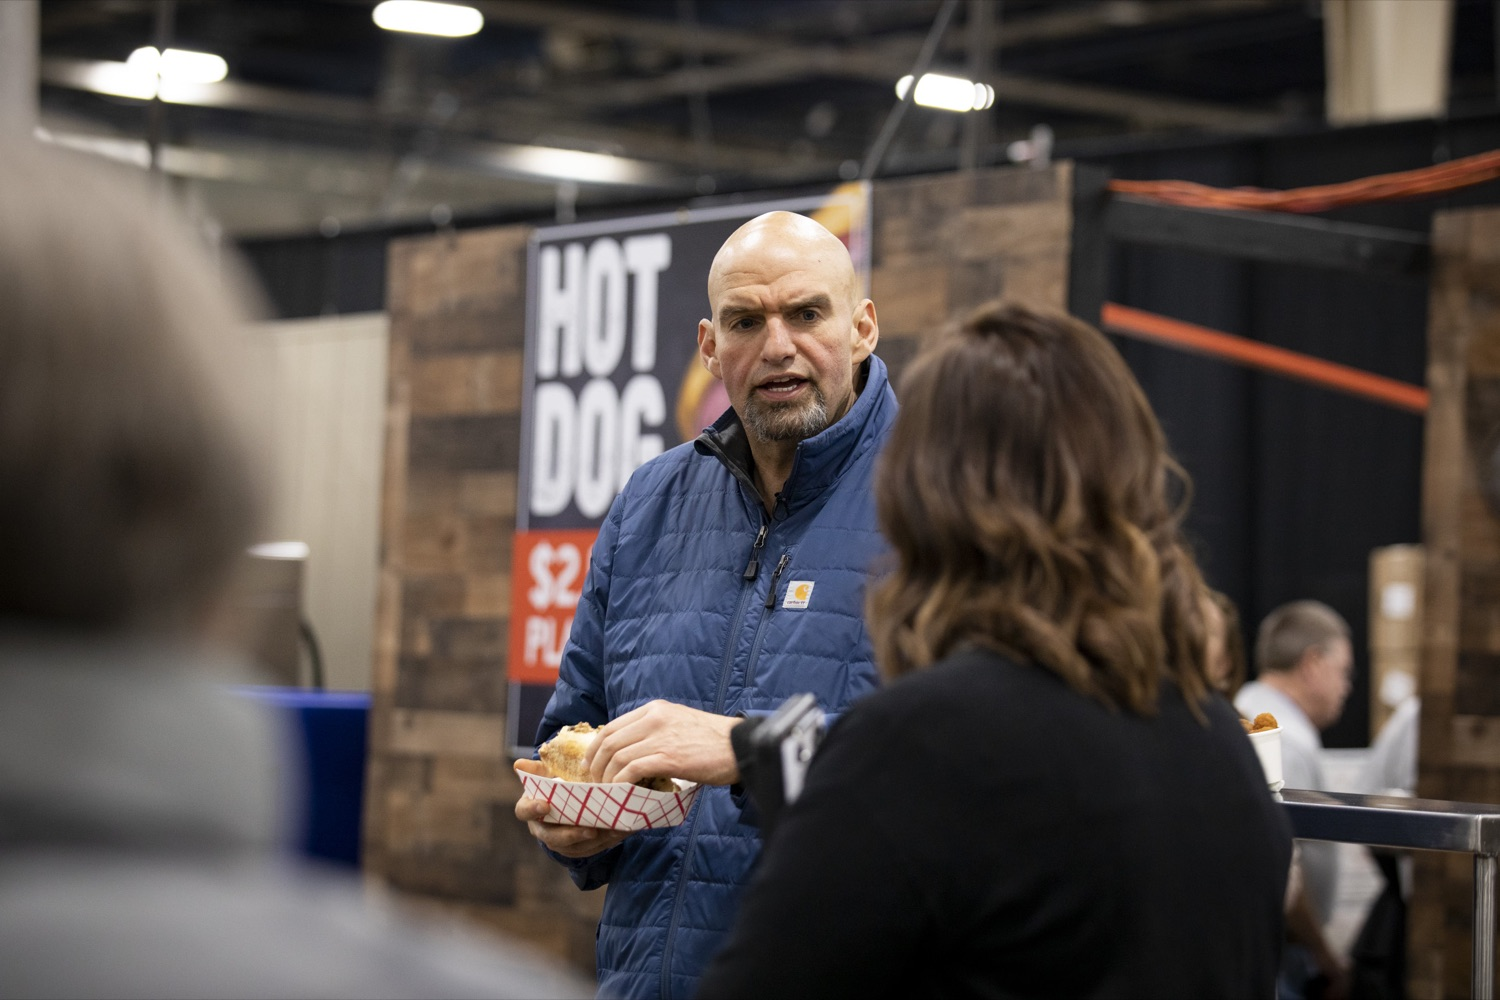 """<a href=""""http://filesource.abacast.com/commonwealthofpa/photo/17658_FARM_SHOW_FIRST_TASTE_CZ_12.JPG"""" target=""""_blank"""">⇣Download Photo<br></a>Lt. Governor John Fetterman samples a Philly port sandwich from the Mushroom Farmers of Pennsylvania at the Pennsylvania Farm Show Food Court in Harrisburg on January 2, 2020."""